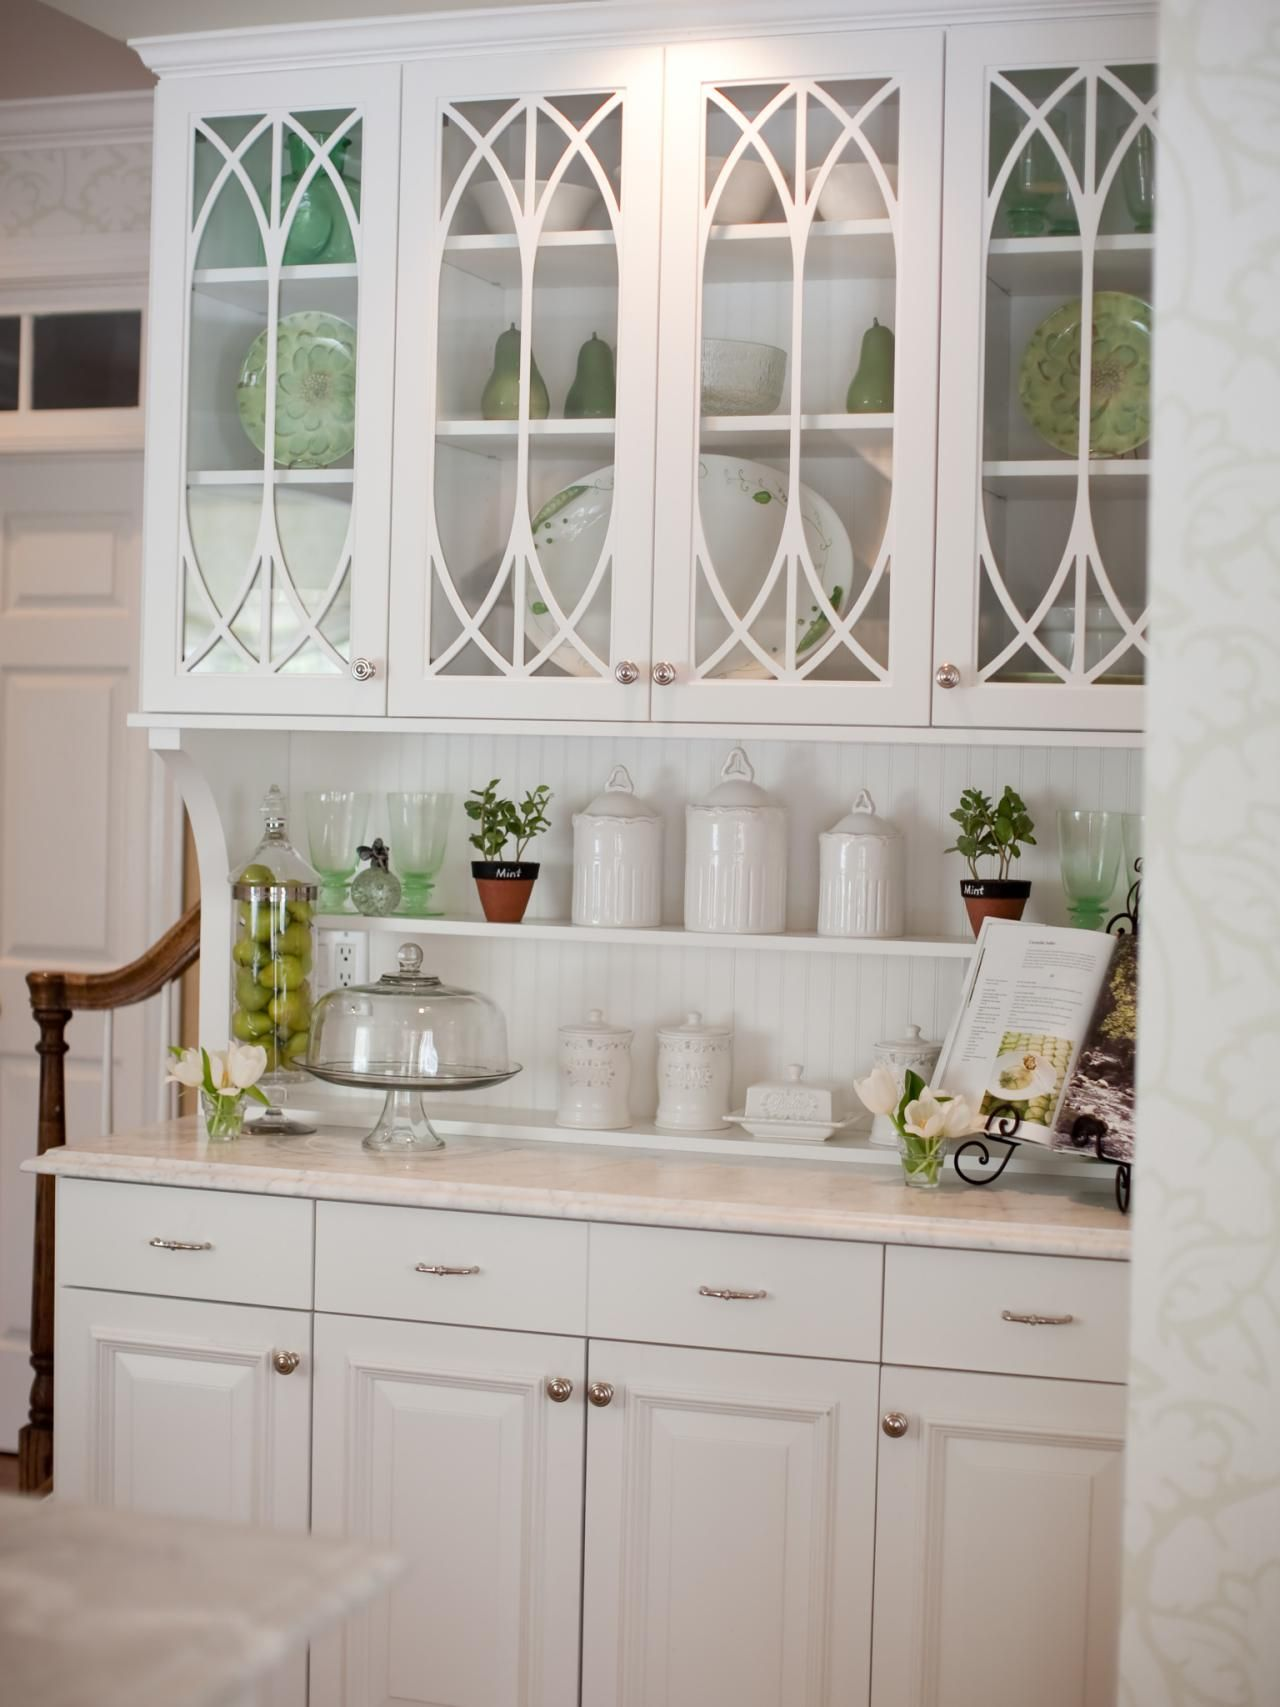 Glass Cabinet Doors Kitchen This Built In Hutch With Traditional Glass Cabinet Doors